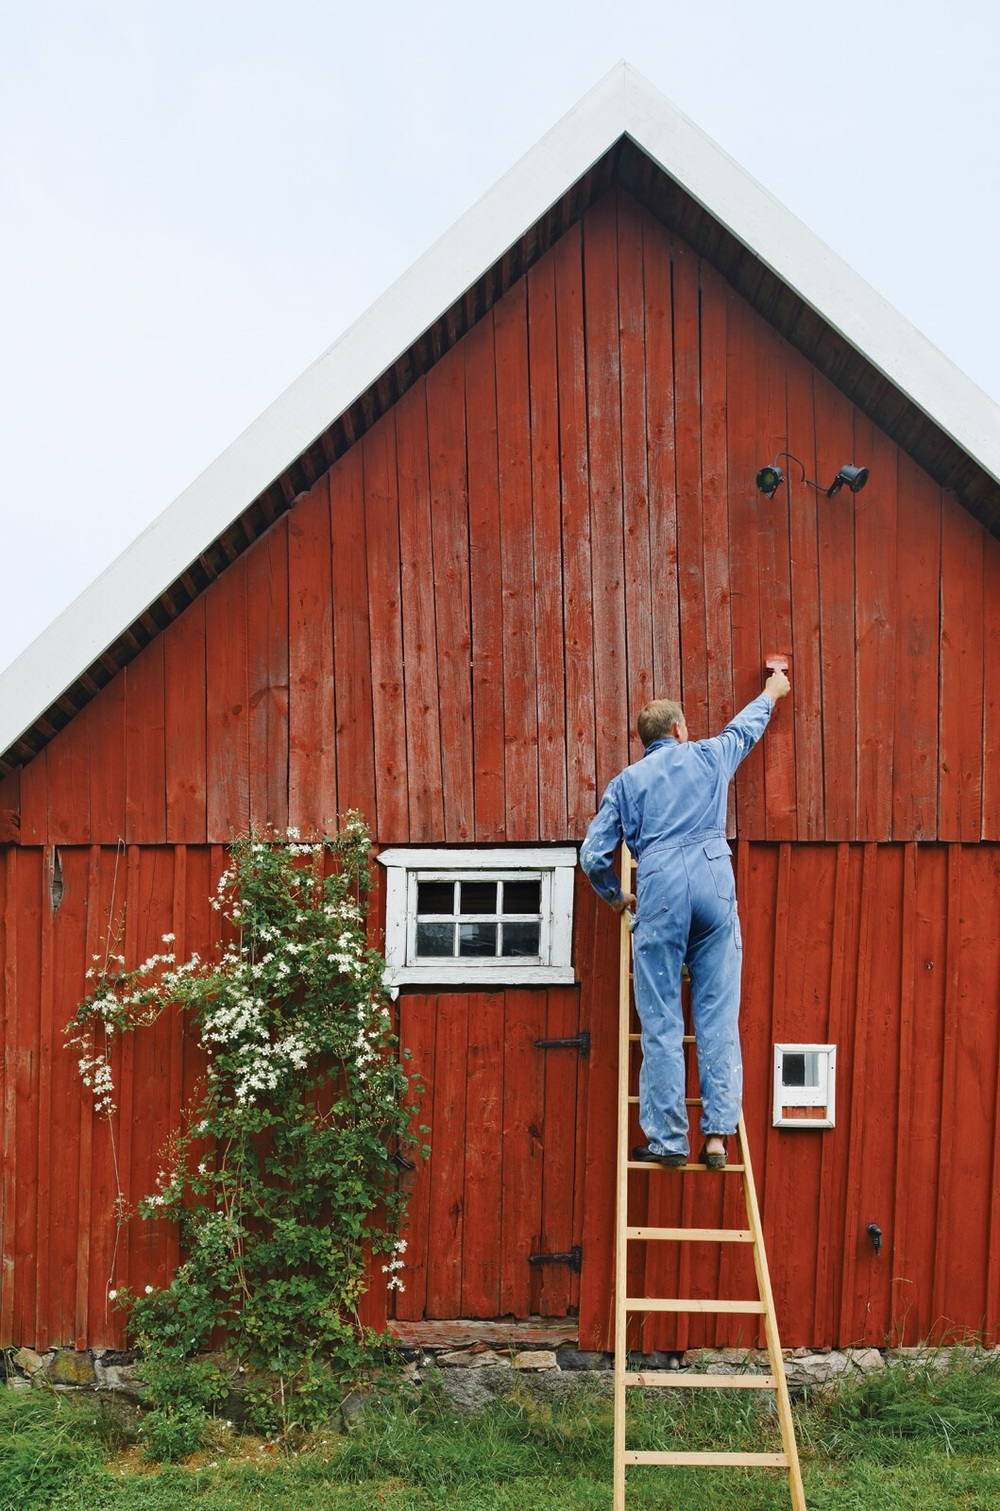 Painting the exterior of the farmhouse is no easy task, but boy is it worth it!